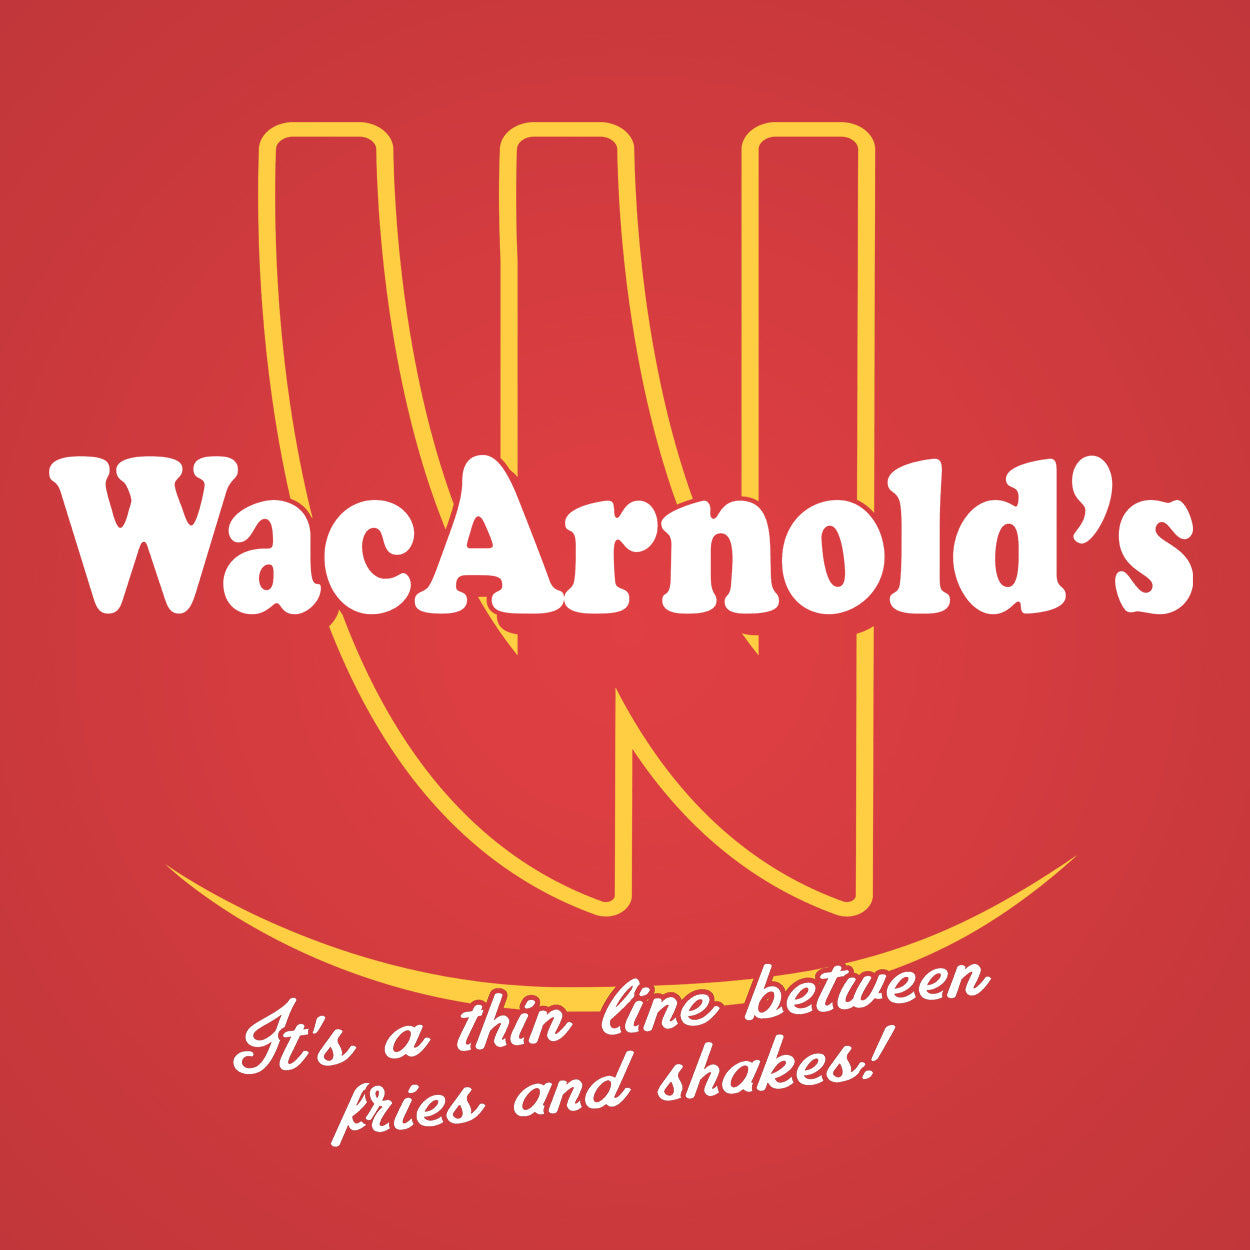 Wac Arnolds Fast Food